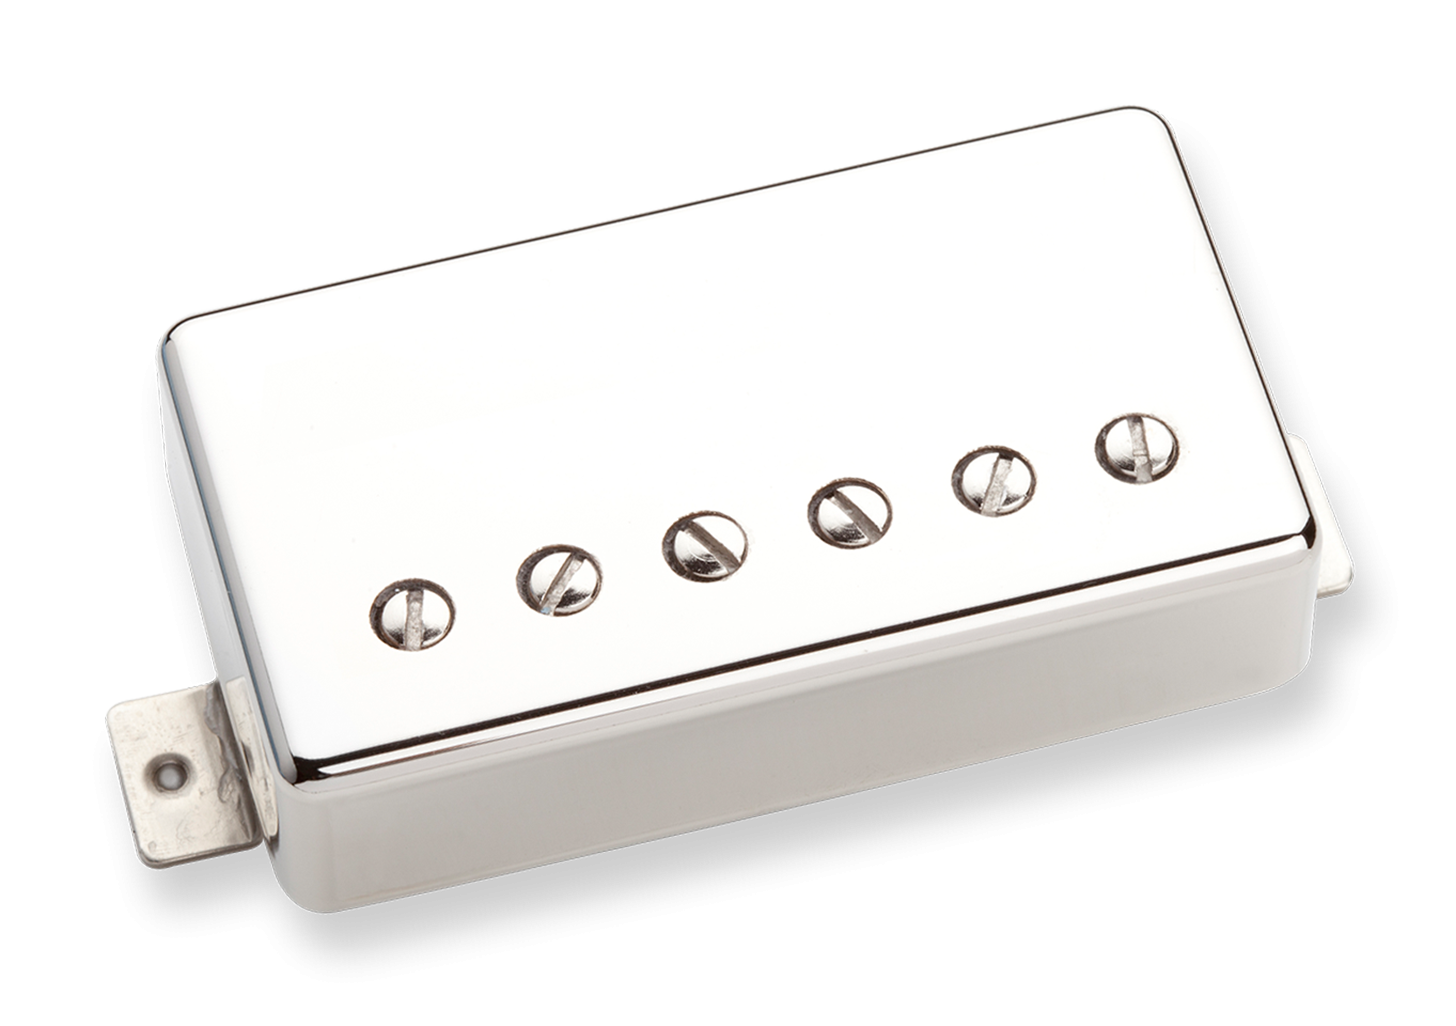 Seymour Duncan Custom Custom Humbucker - SH-11 Nickel